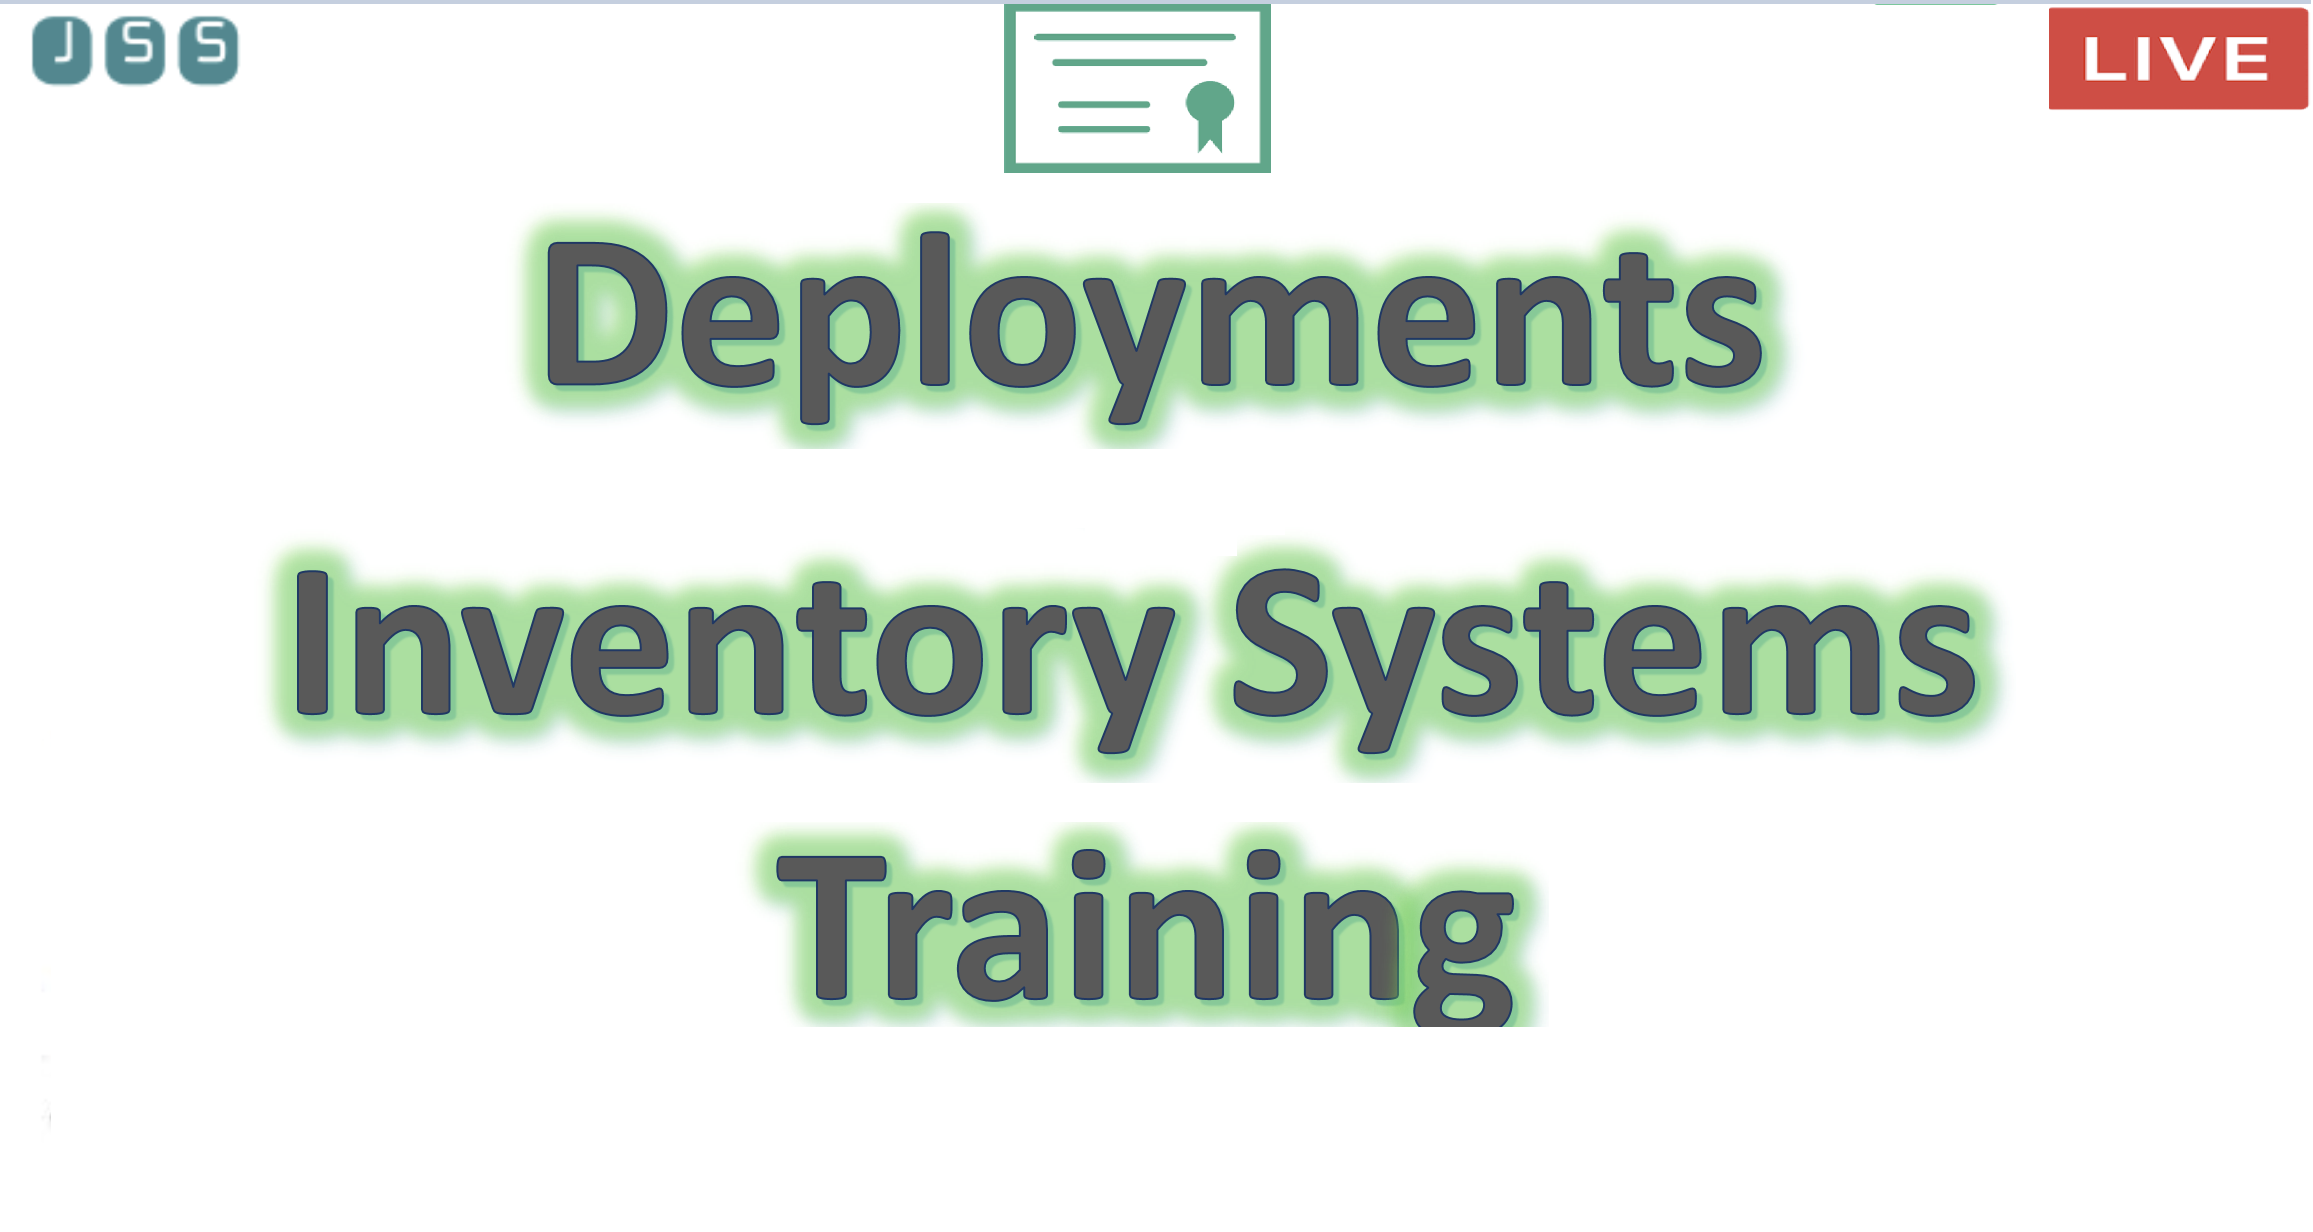 200 125 cisco certified network associate ccna v3 deployments and inventory systems xflitez Choice Image